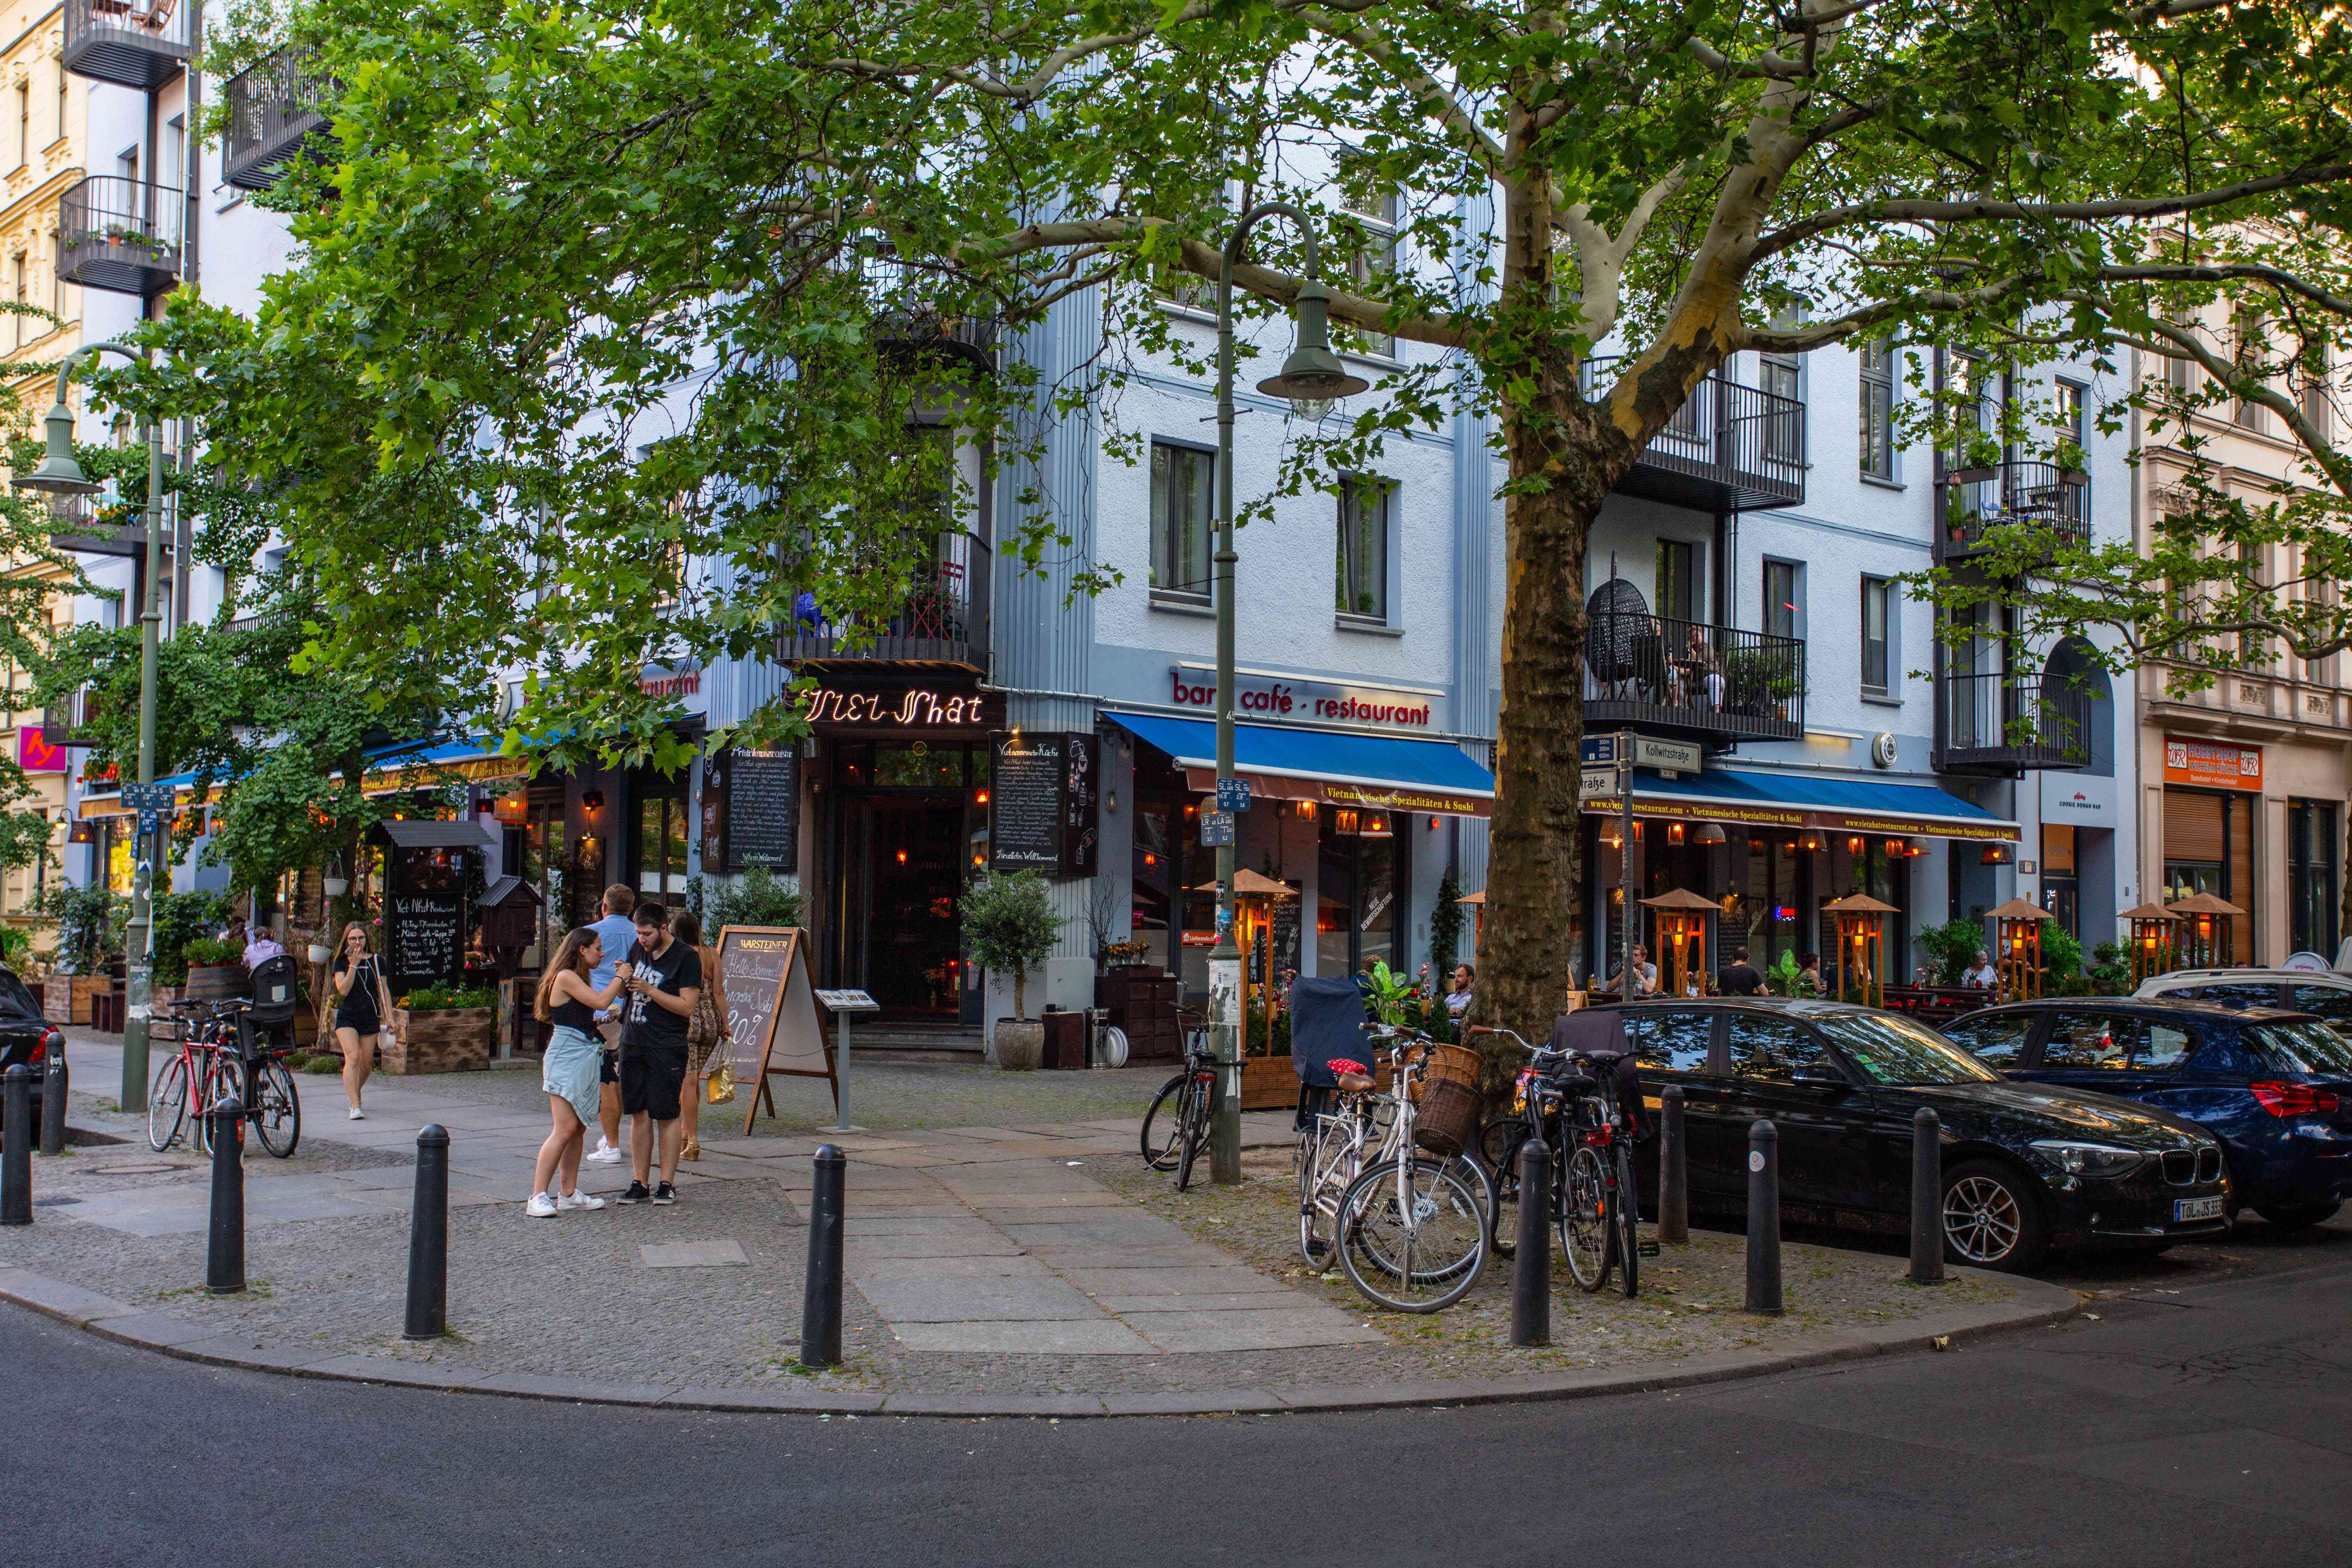 A street corner with colorful shop fronts and people hanging out